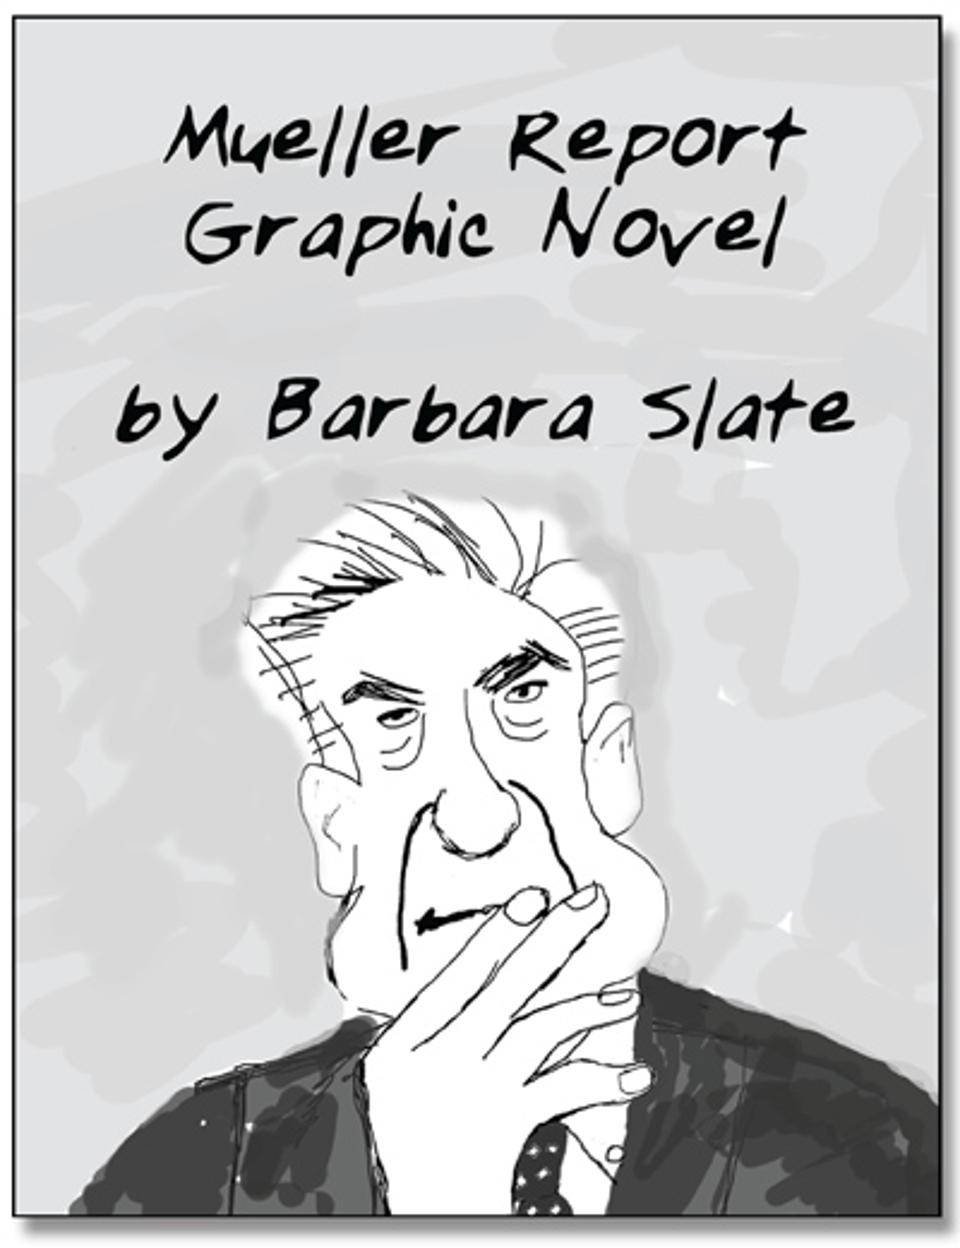 robert mueller report graphic novel barbara slate richard minsky